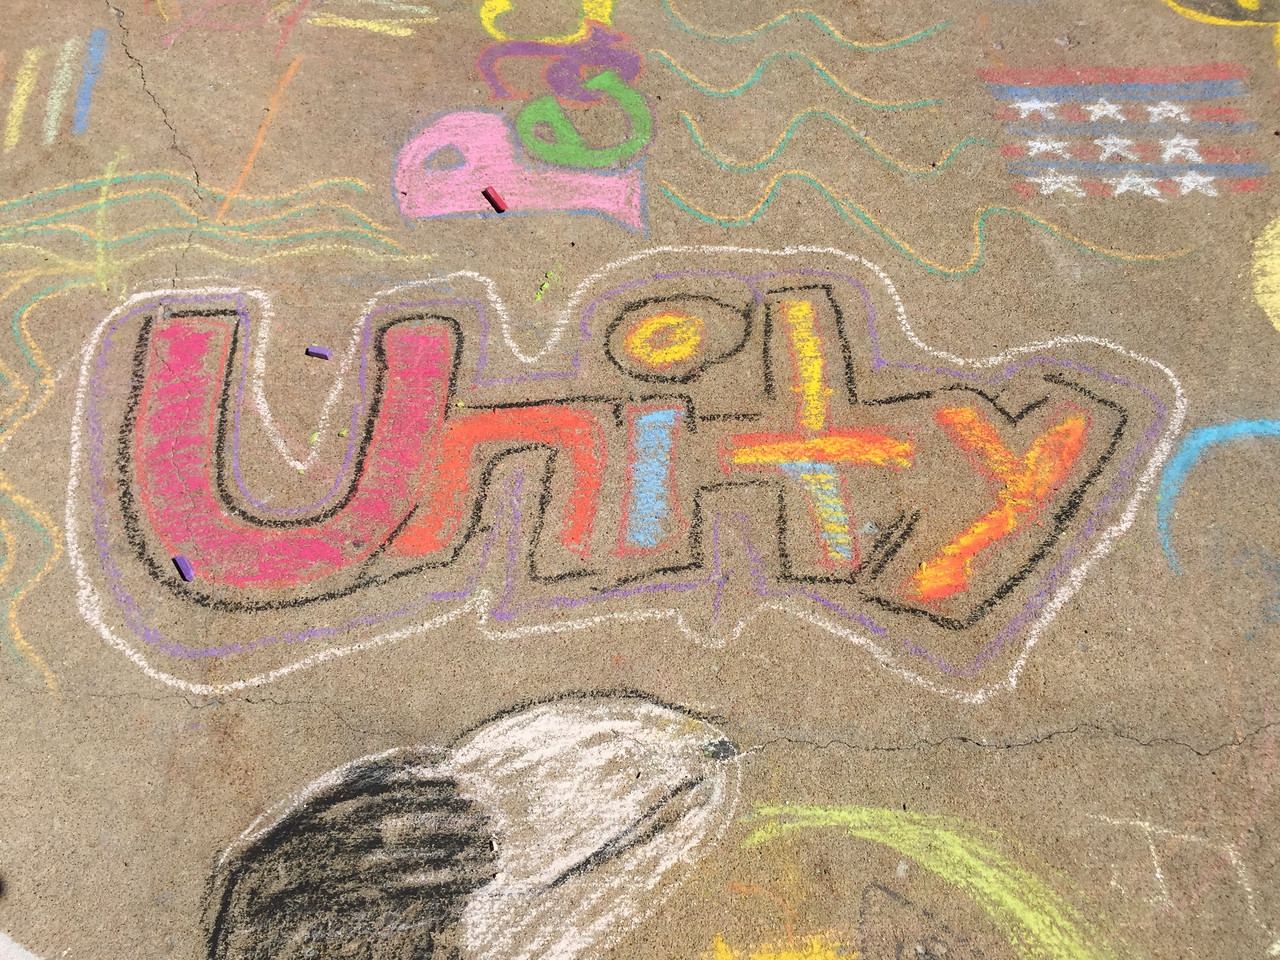 Unity Drawing FergUSon Together: A Vision of Peace; Sept. 18-19, 2015 Social Justice Summit and Community CHALK4PEACE Celebration   St. Louis Community College, Florissant Valley Ferguson, Missouri